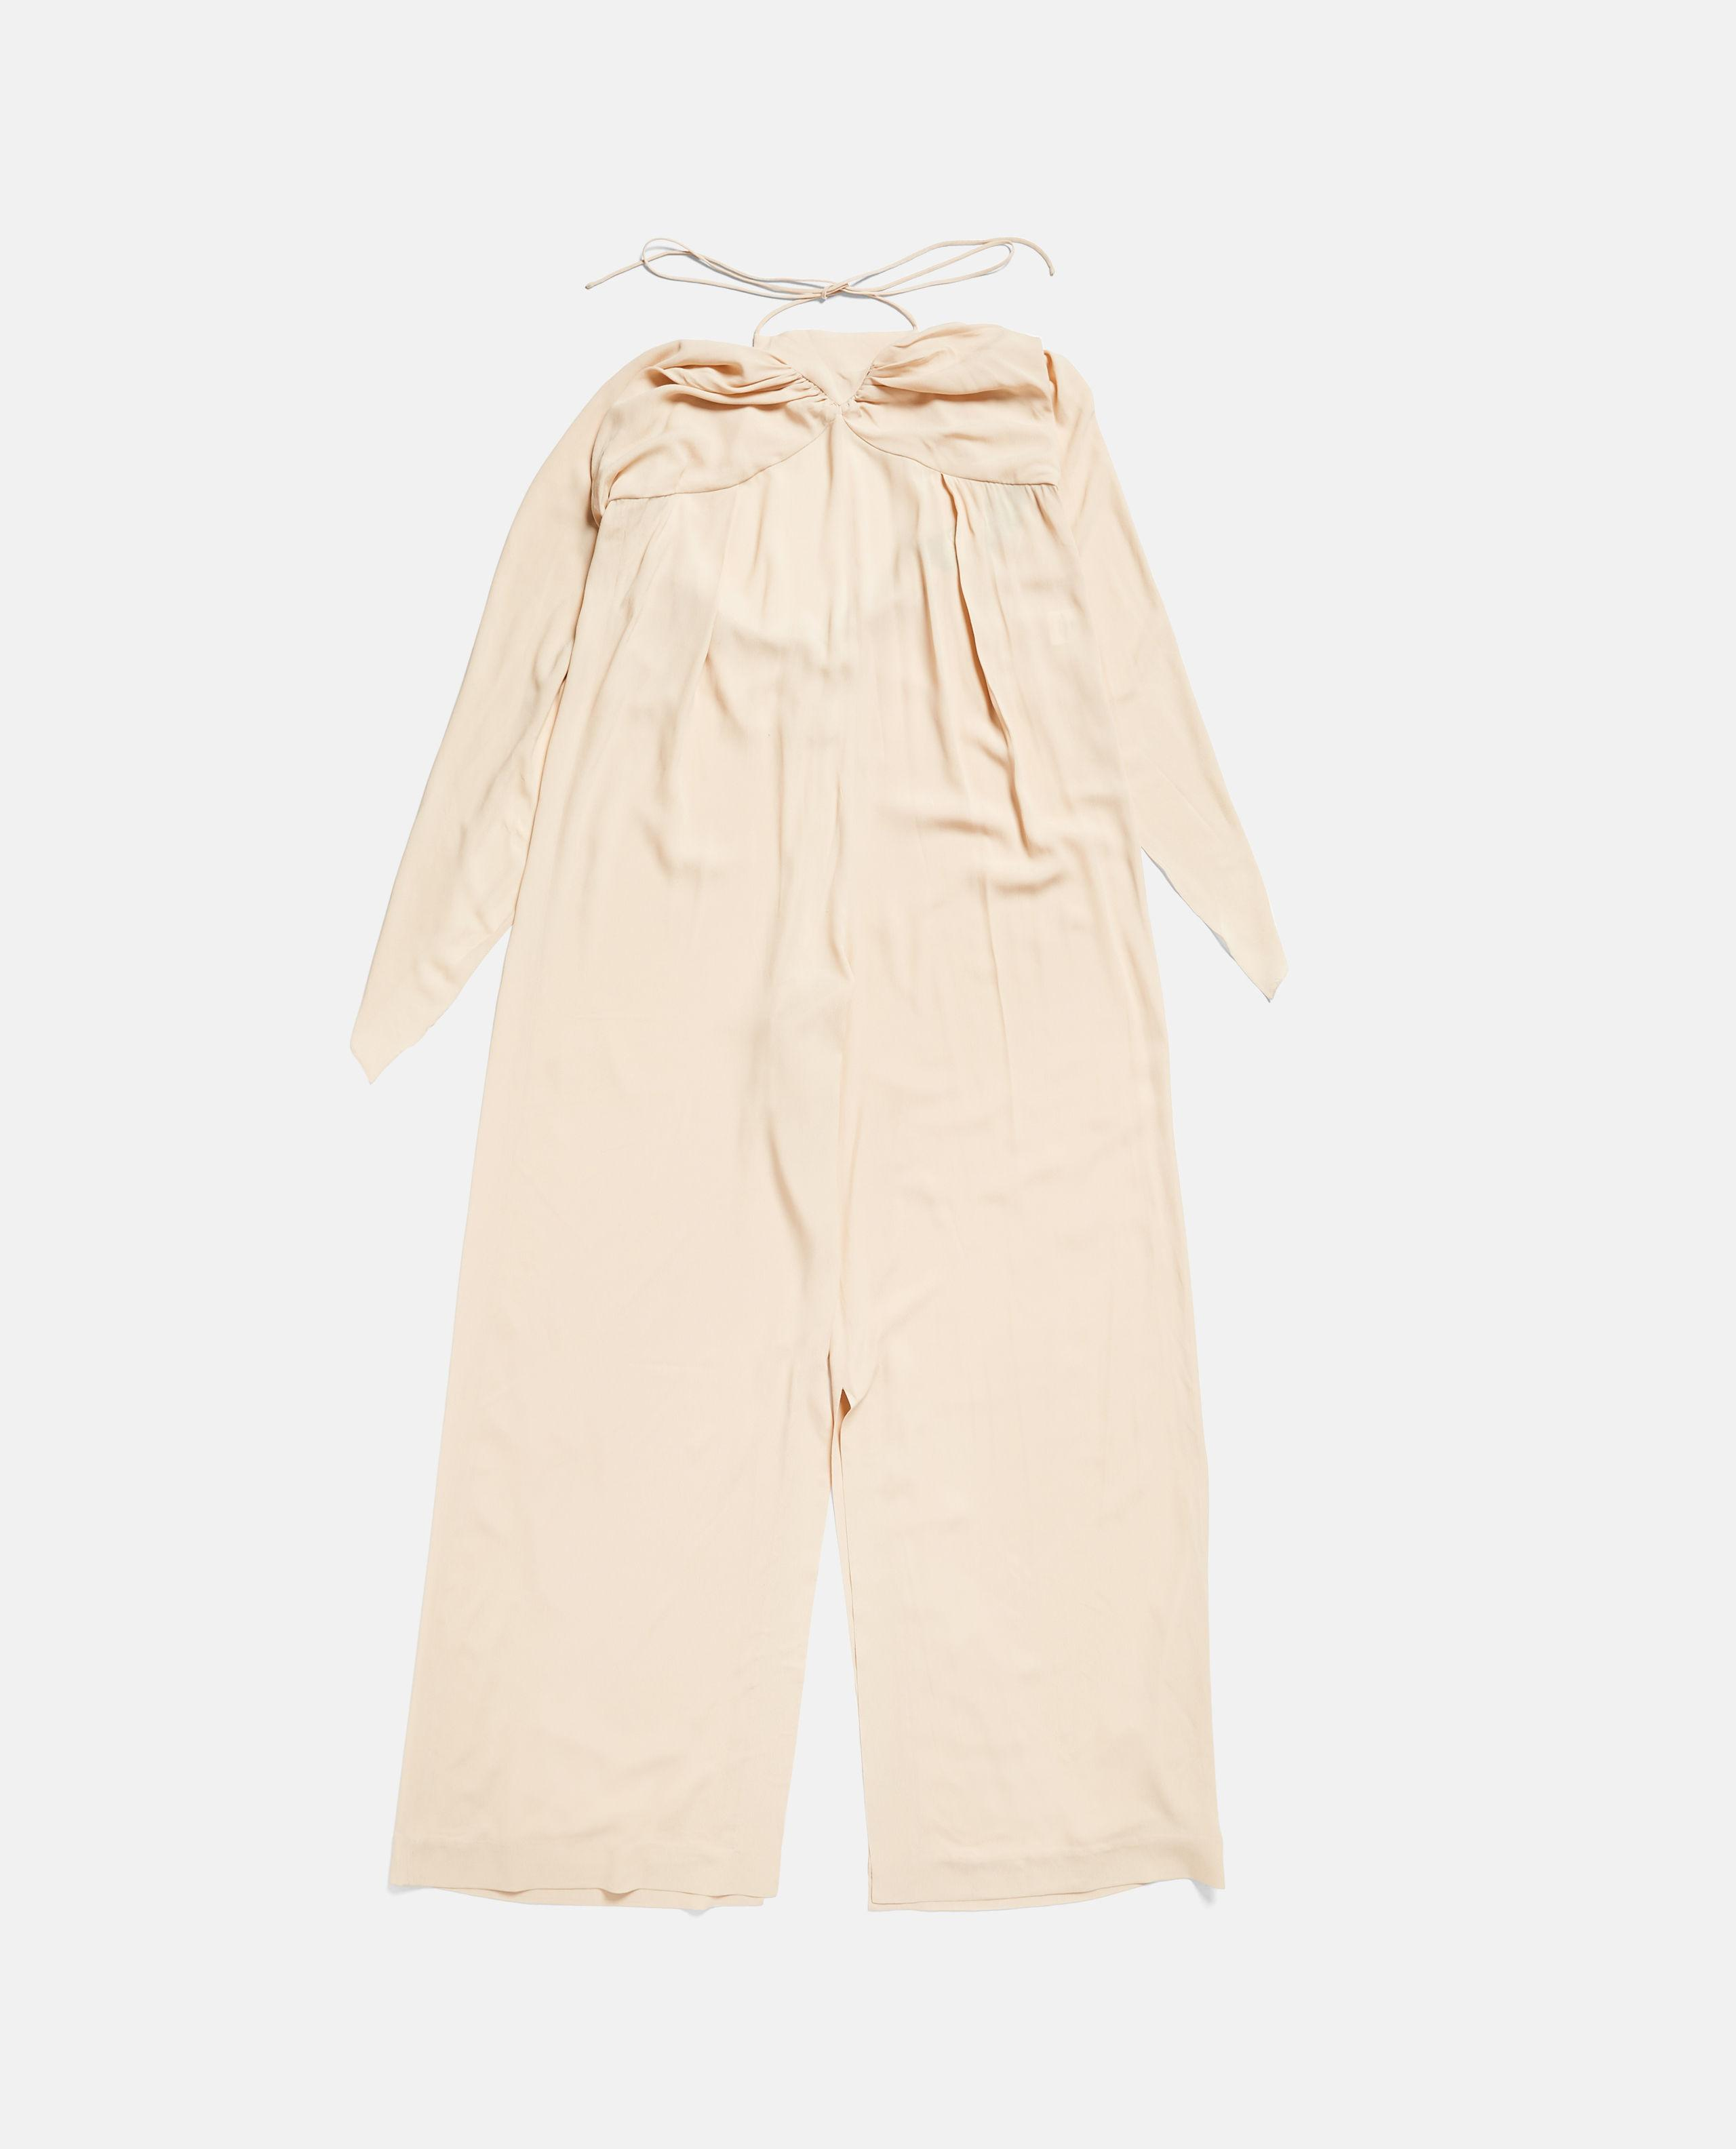 0c1afc1a77 Jacquemus Jumpsuit With Drapery in Natural - Lyst